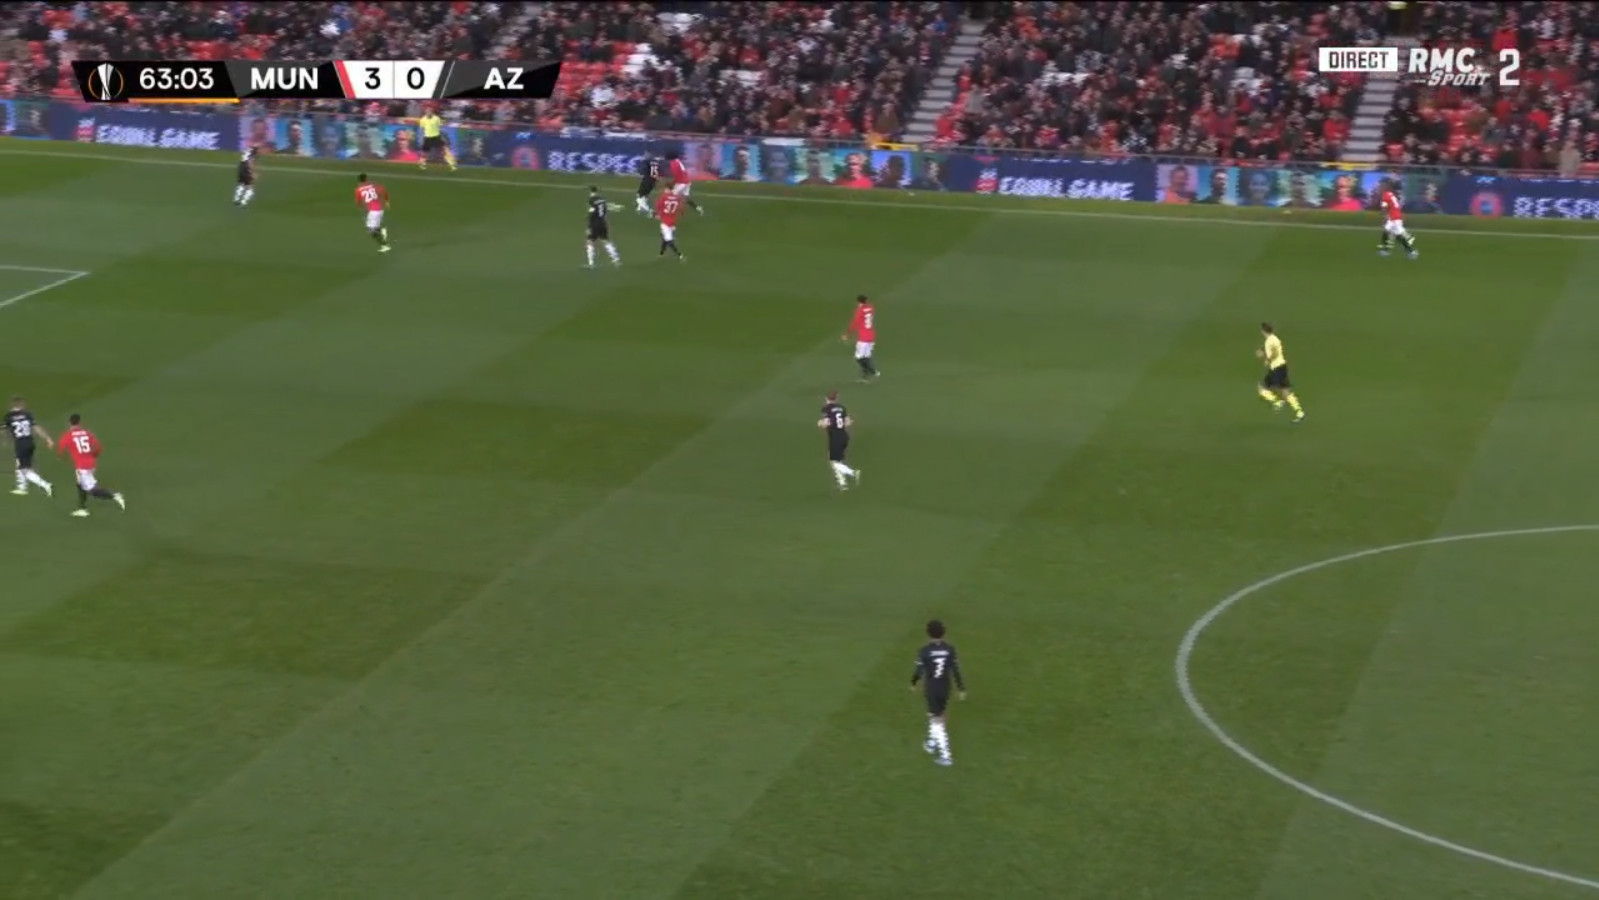 Manchester United - AZ 4-0 door Mason Greenwood